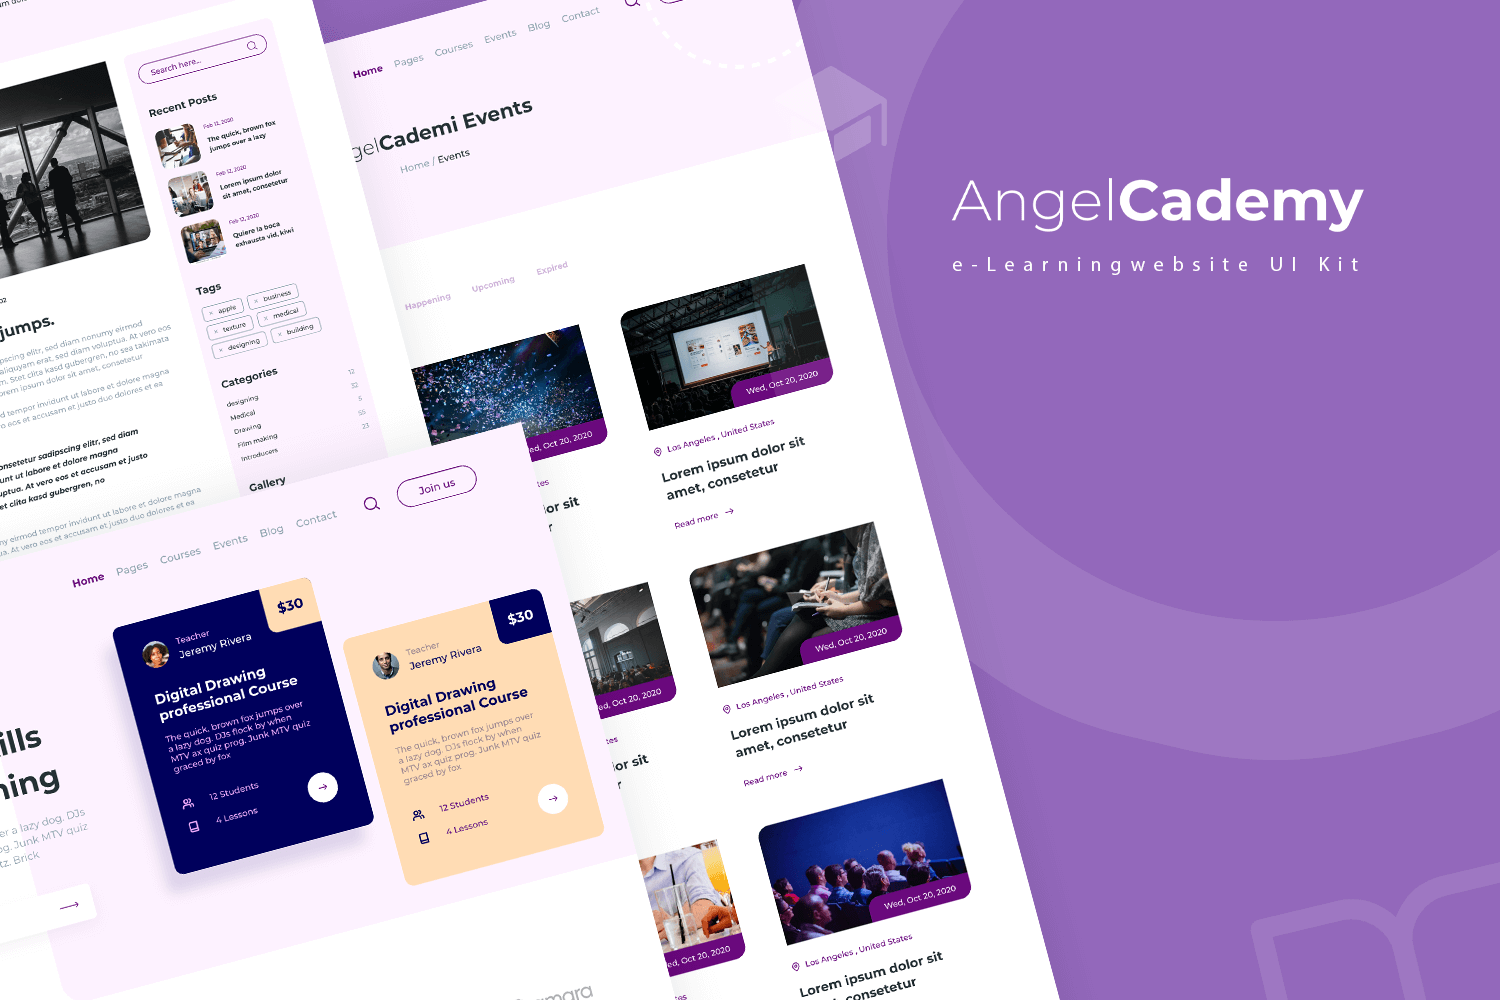 AngelCademy - e-Learning website UI Kit